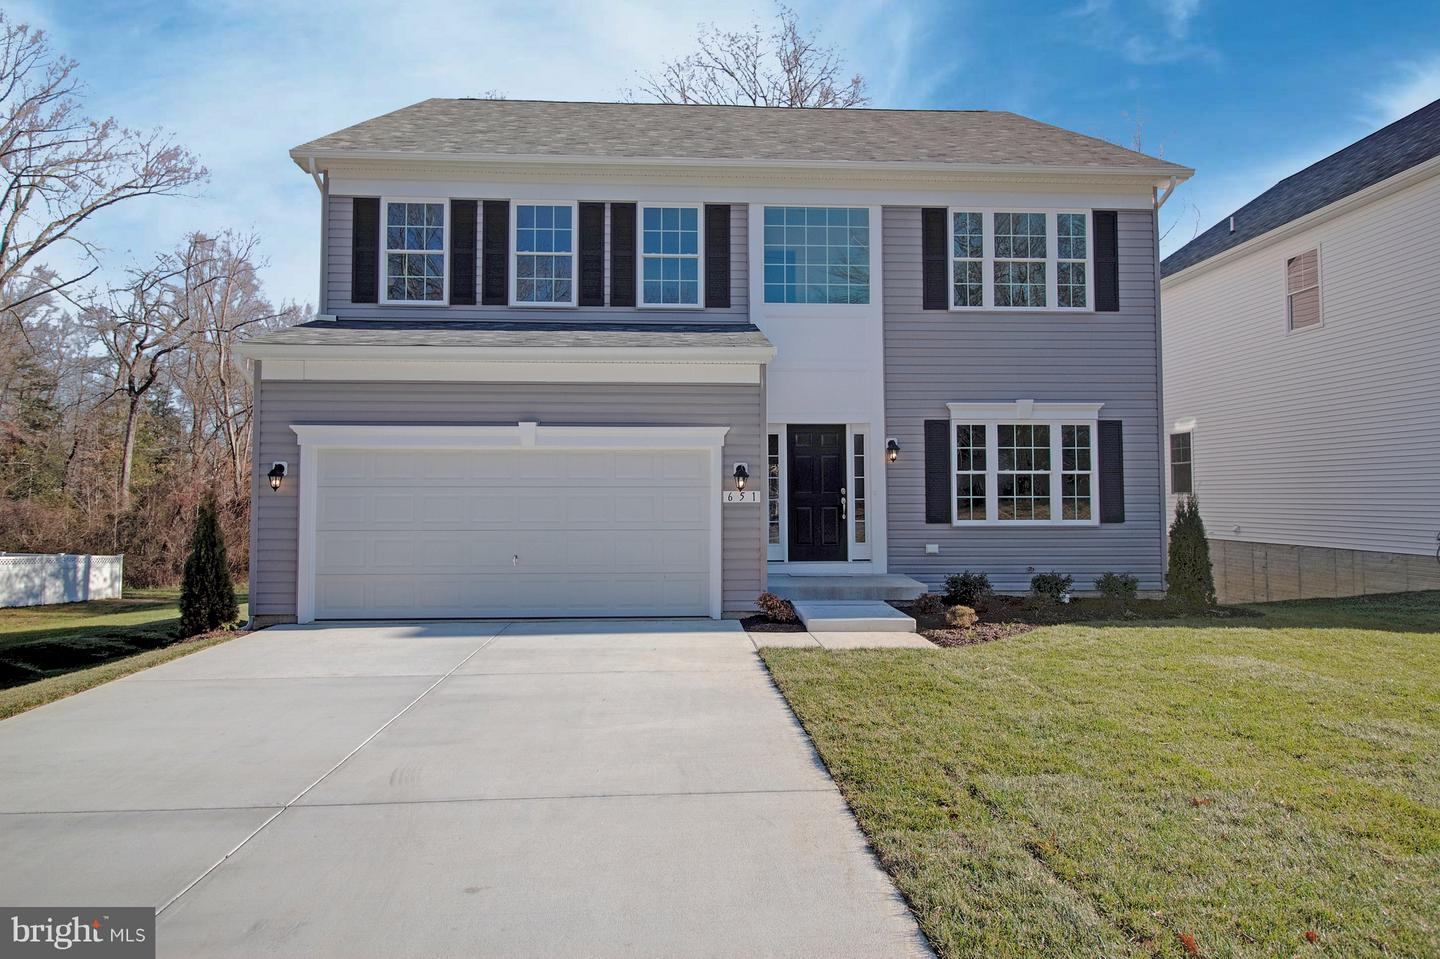 1418 CANOPY LN, ODENTON, Maryland 21113, 5 Bedrooms Bedrooms, ,5 BathroomsBathrooms,Single Family,For Sale,1418 CANOPY LN,MDAA417354